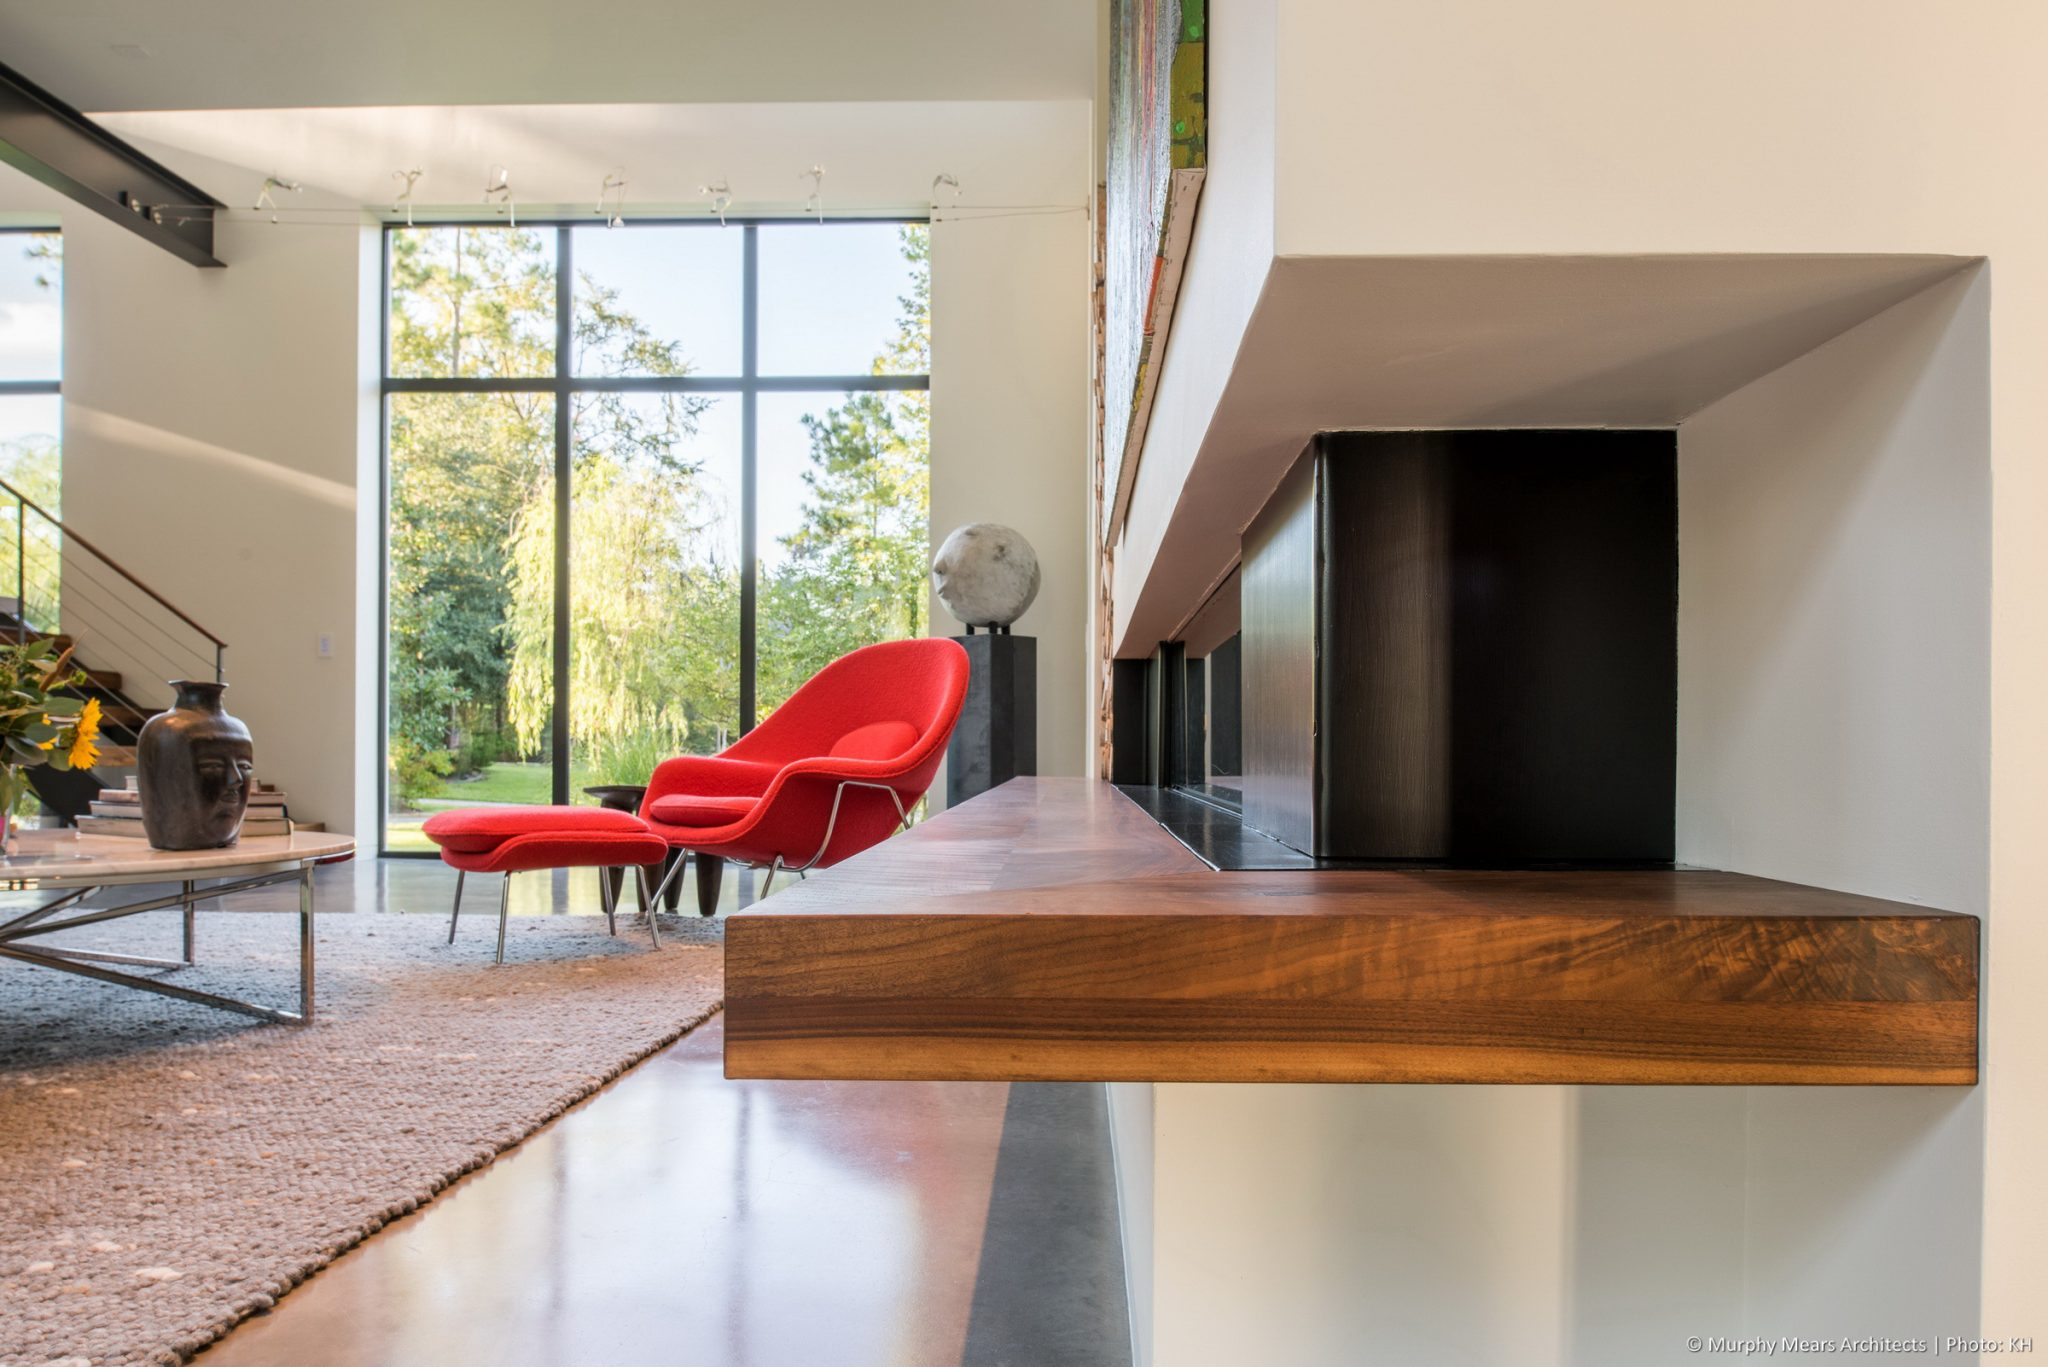 Open House - Wood and steel fireplace finishes complement the wood and steel stair beyond. A floor to ceiling window on the front aligns with an identical window on the opposite side of the room.